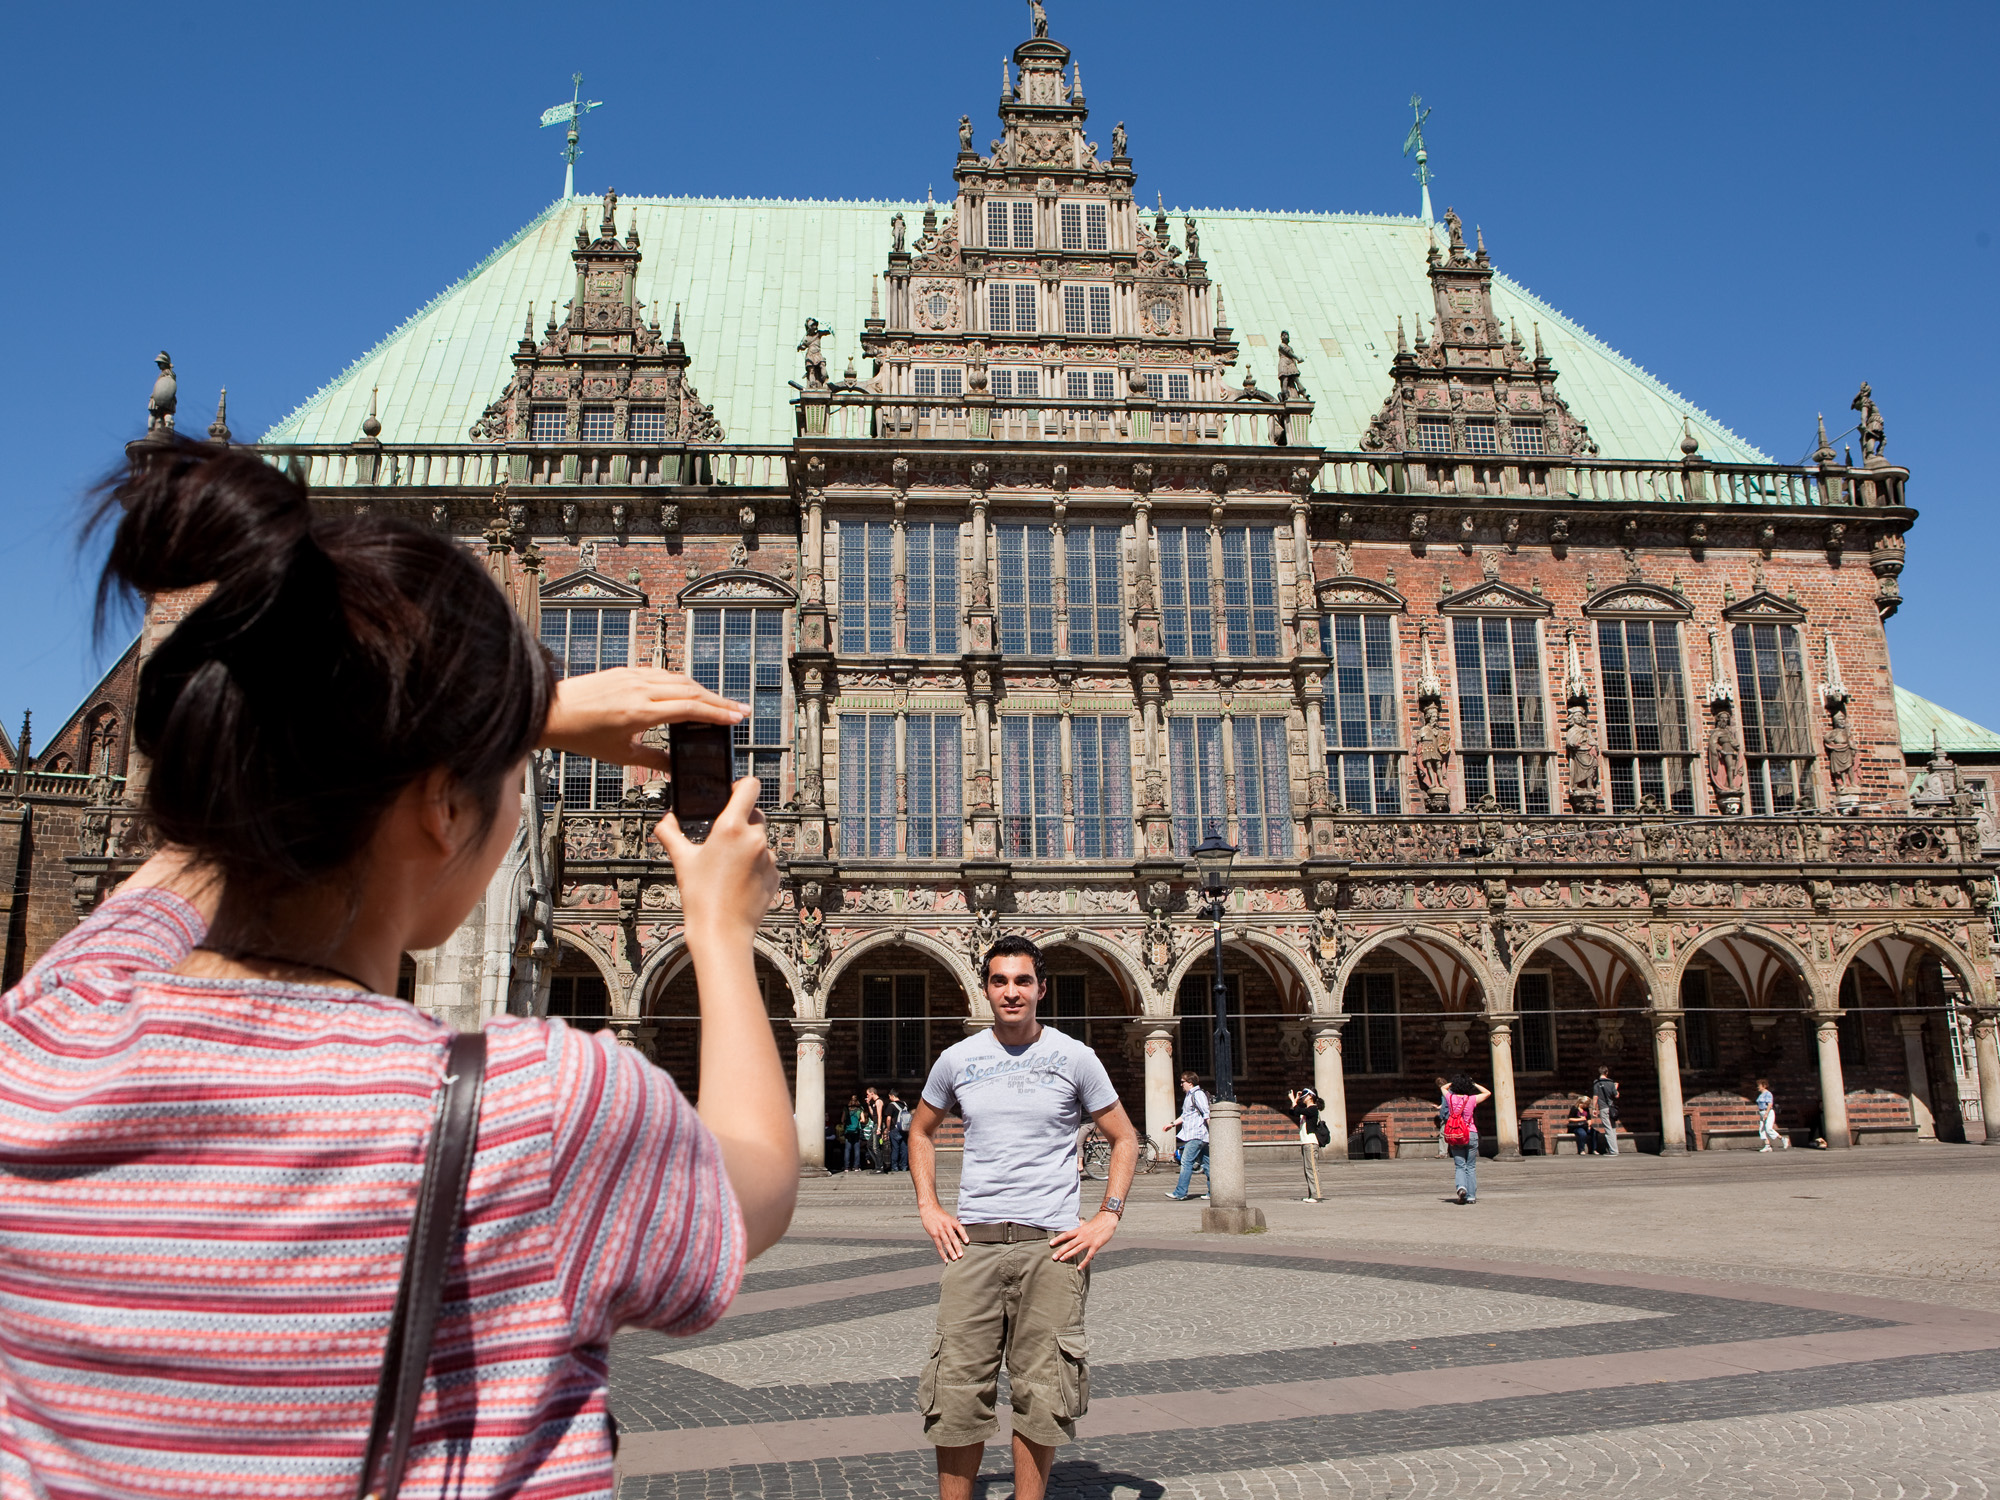 A woman, taking a photo of a man in front of the Bremer town hall